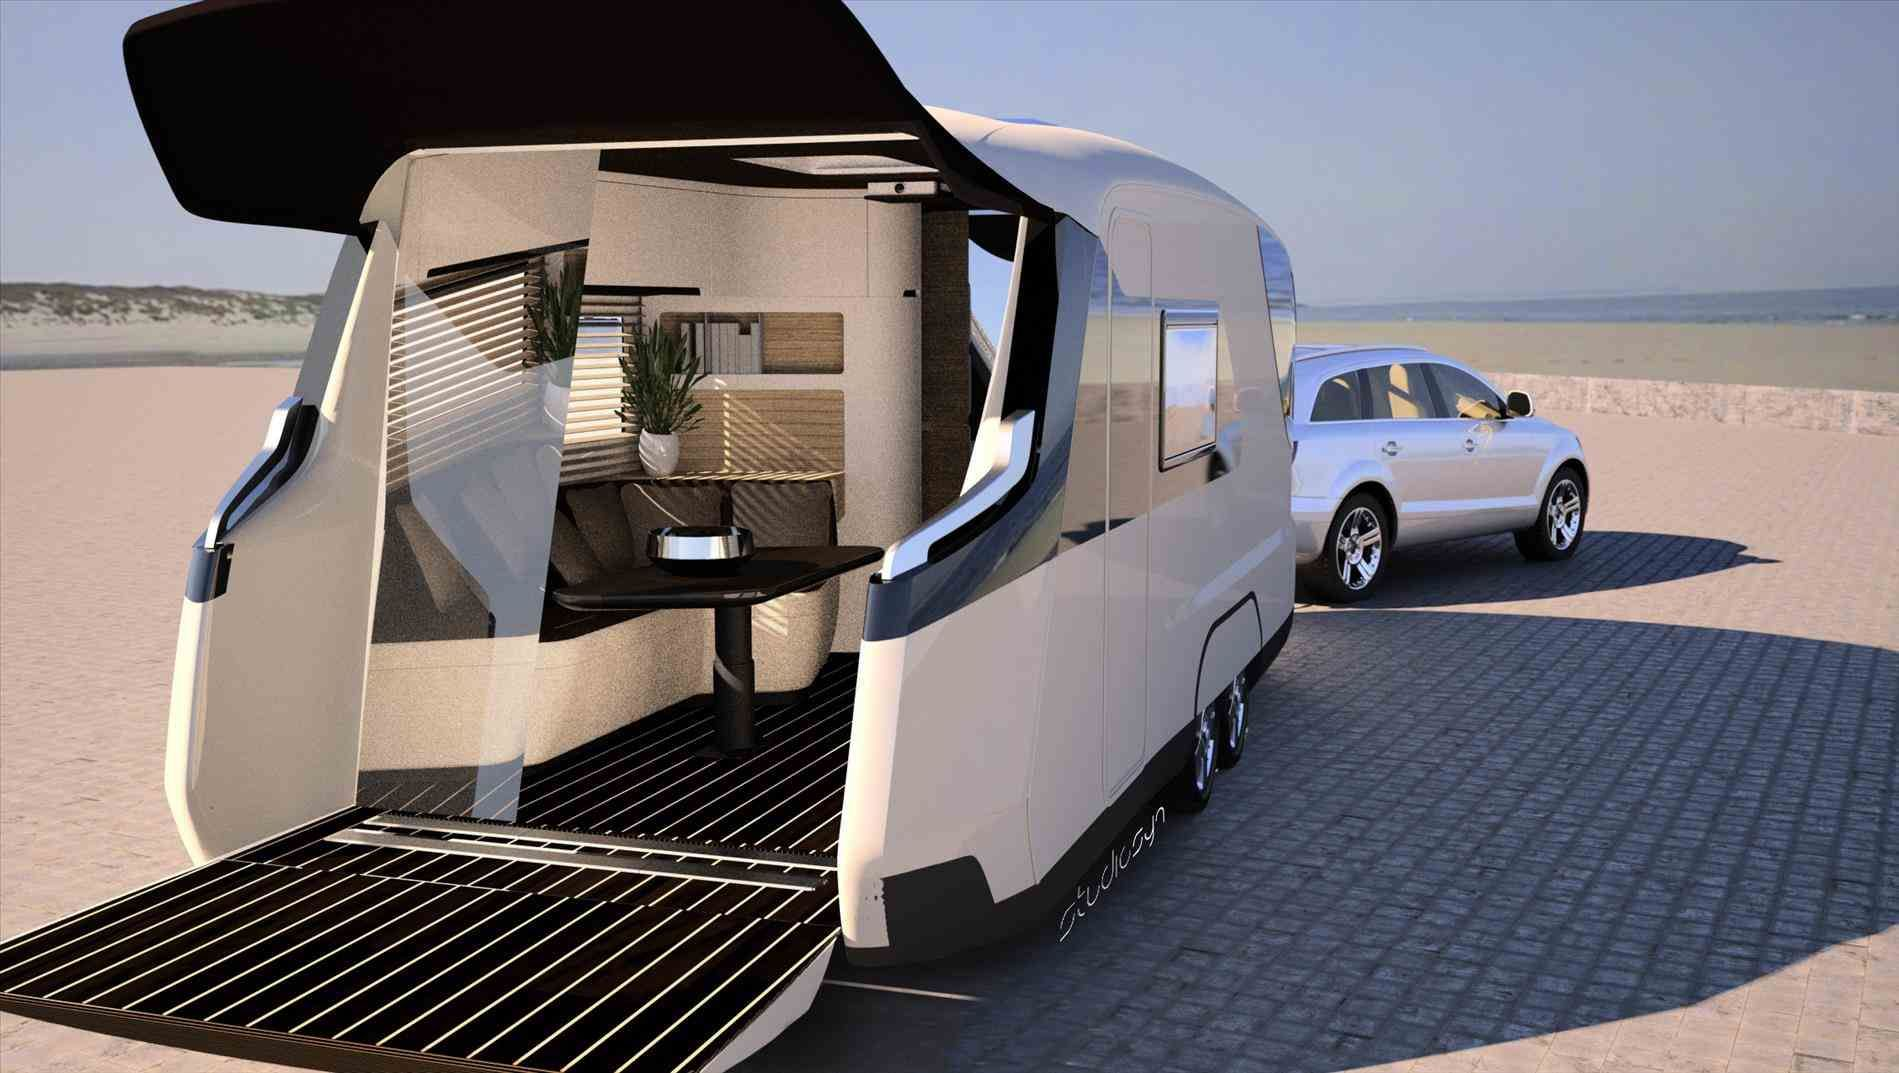 Luxury Rv Trailers For Sale